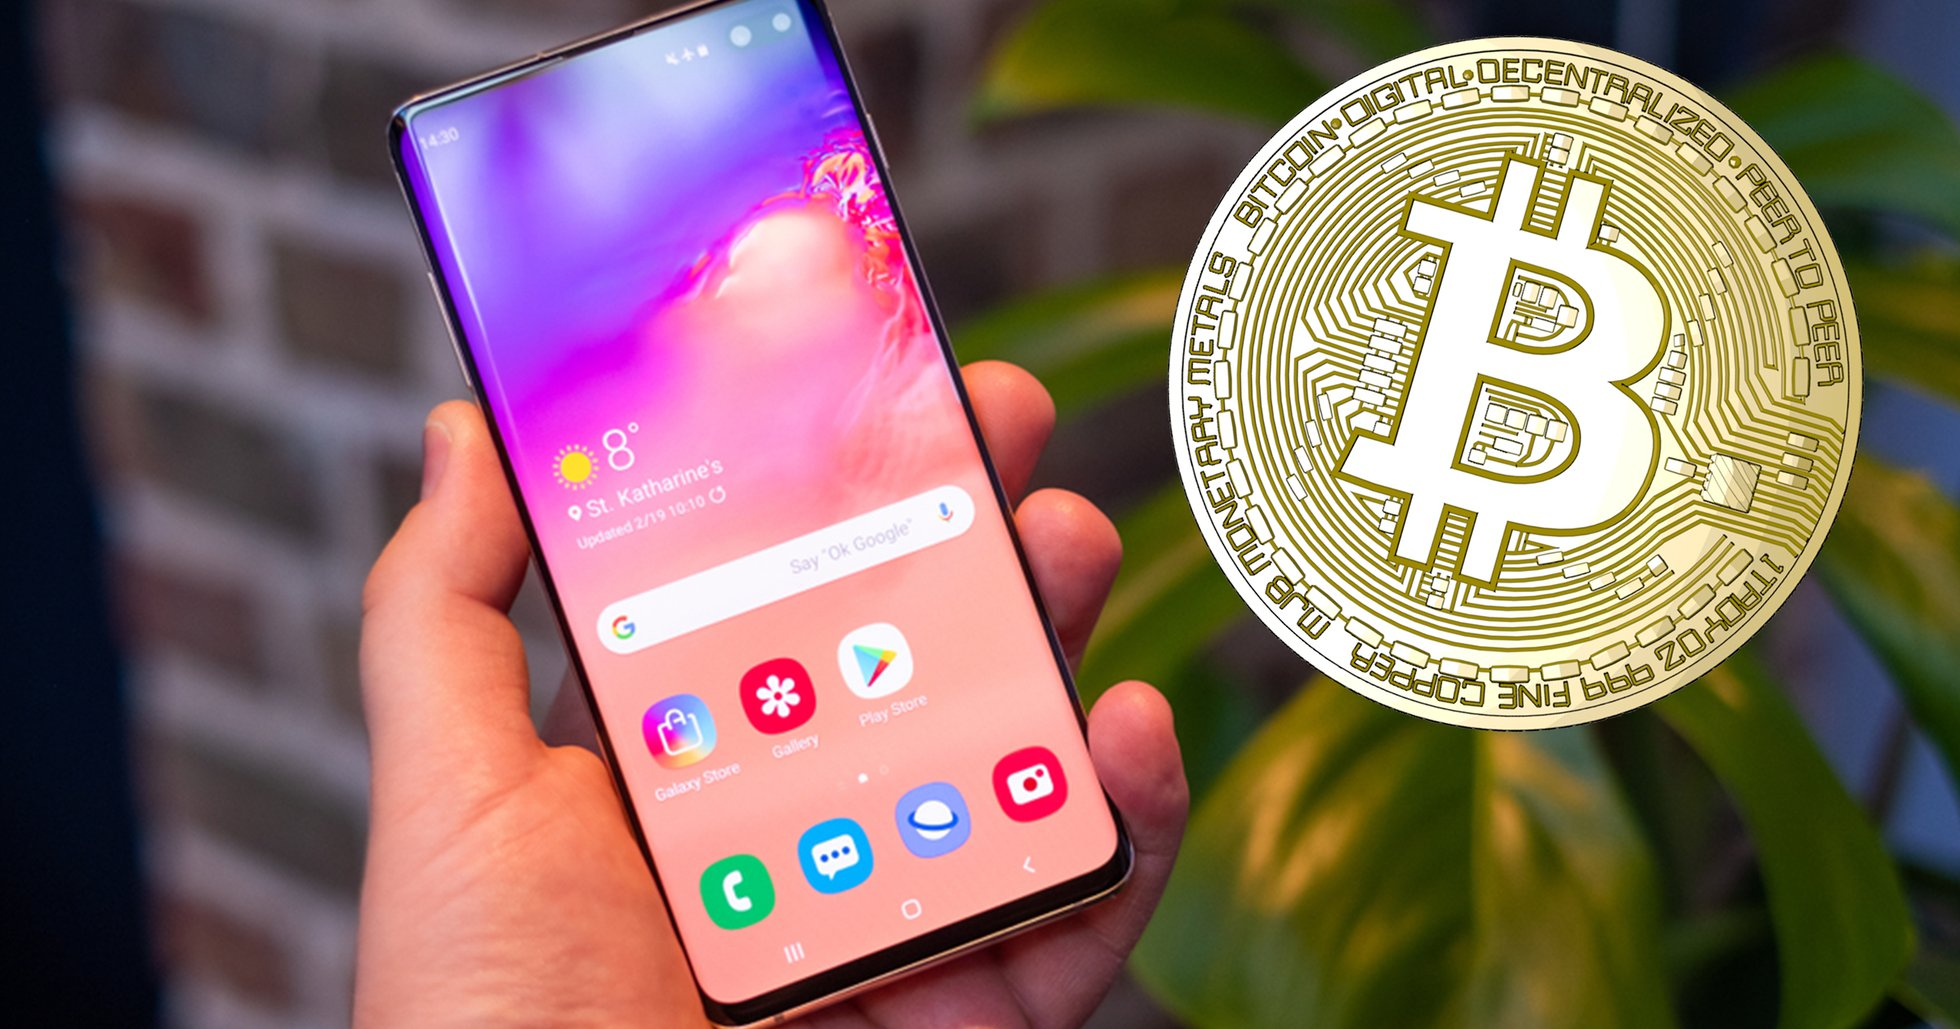 After long wait: Samsung's crypto app now supports bitcoin